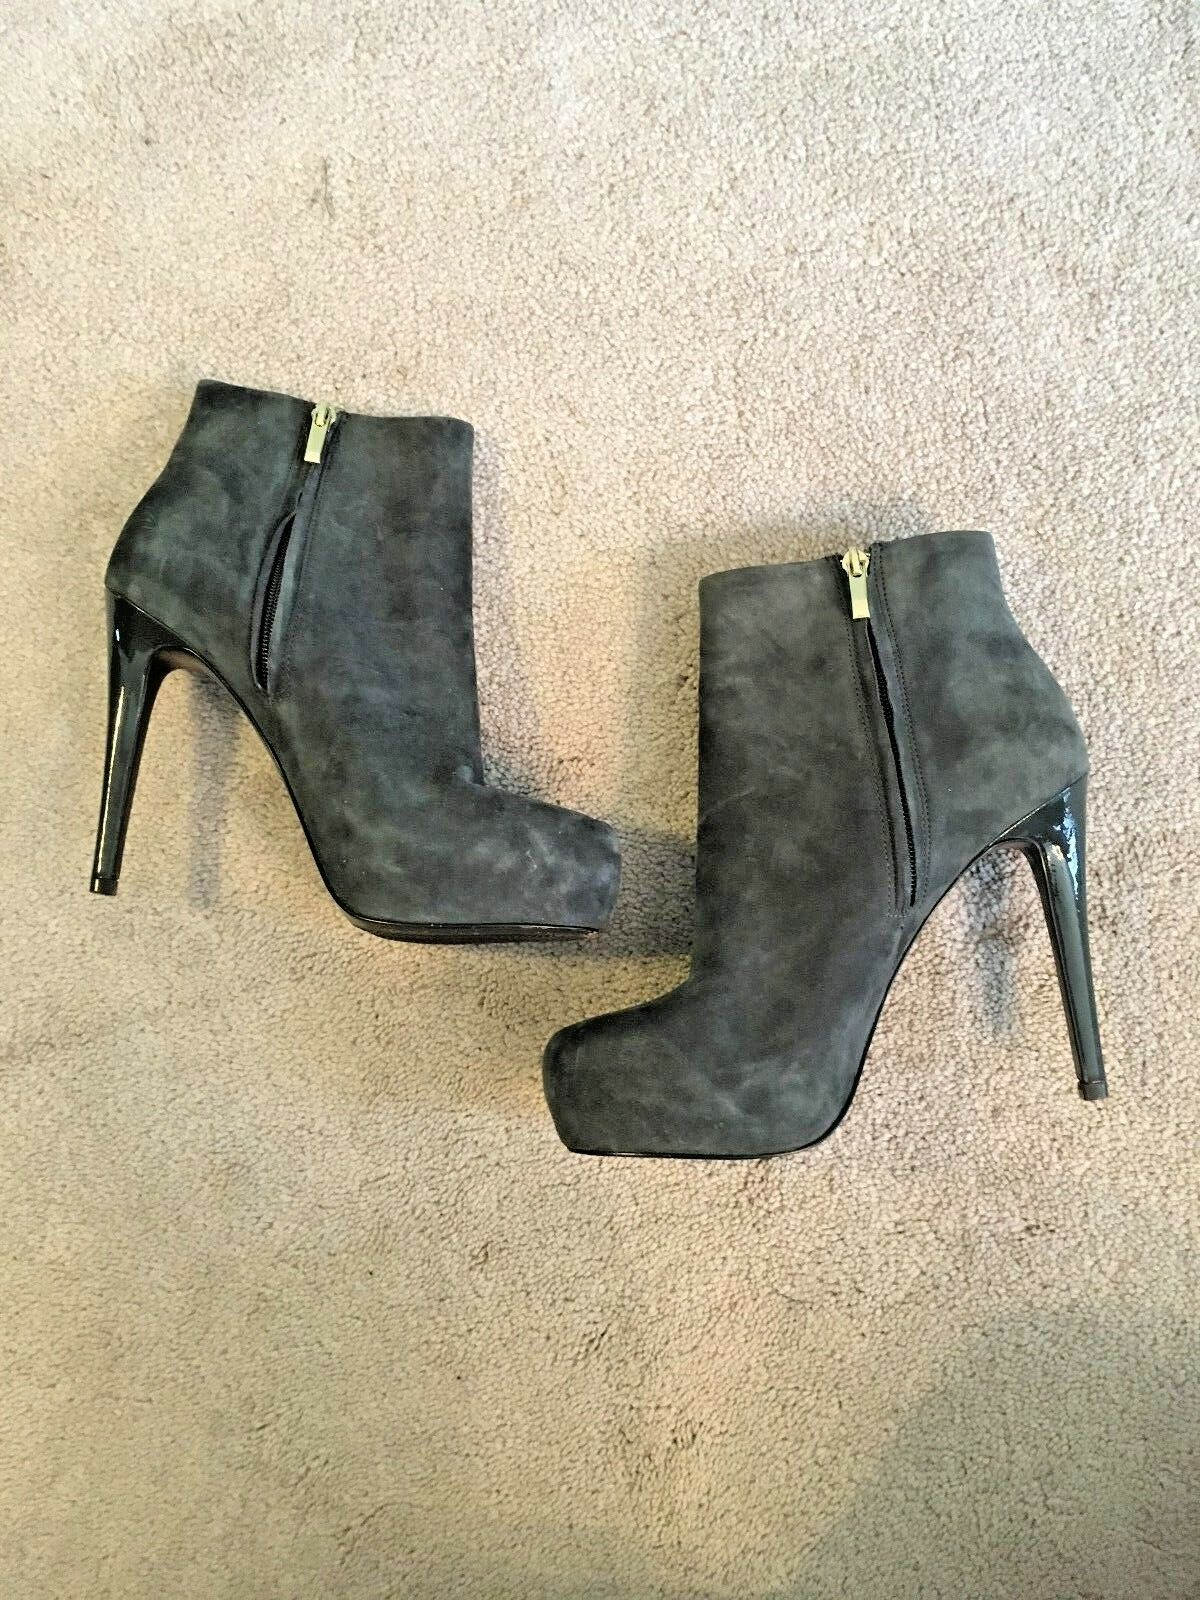 Diane Von Furstenberg Gray - Suede High Heeled Booties - Gray 8.5M c16254